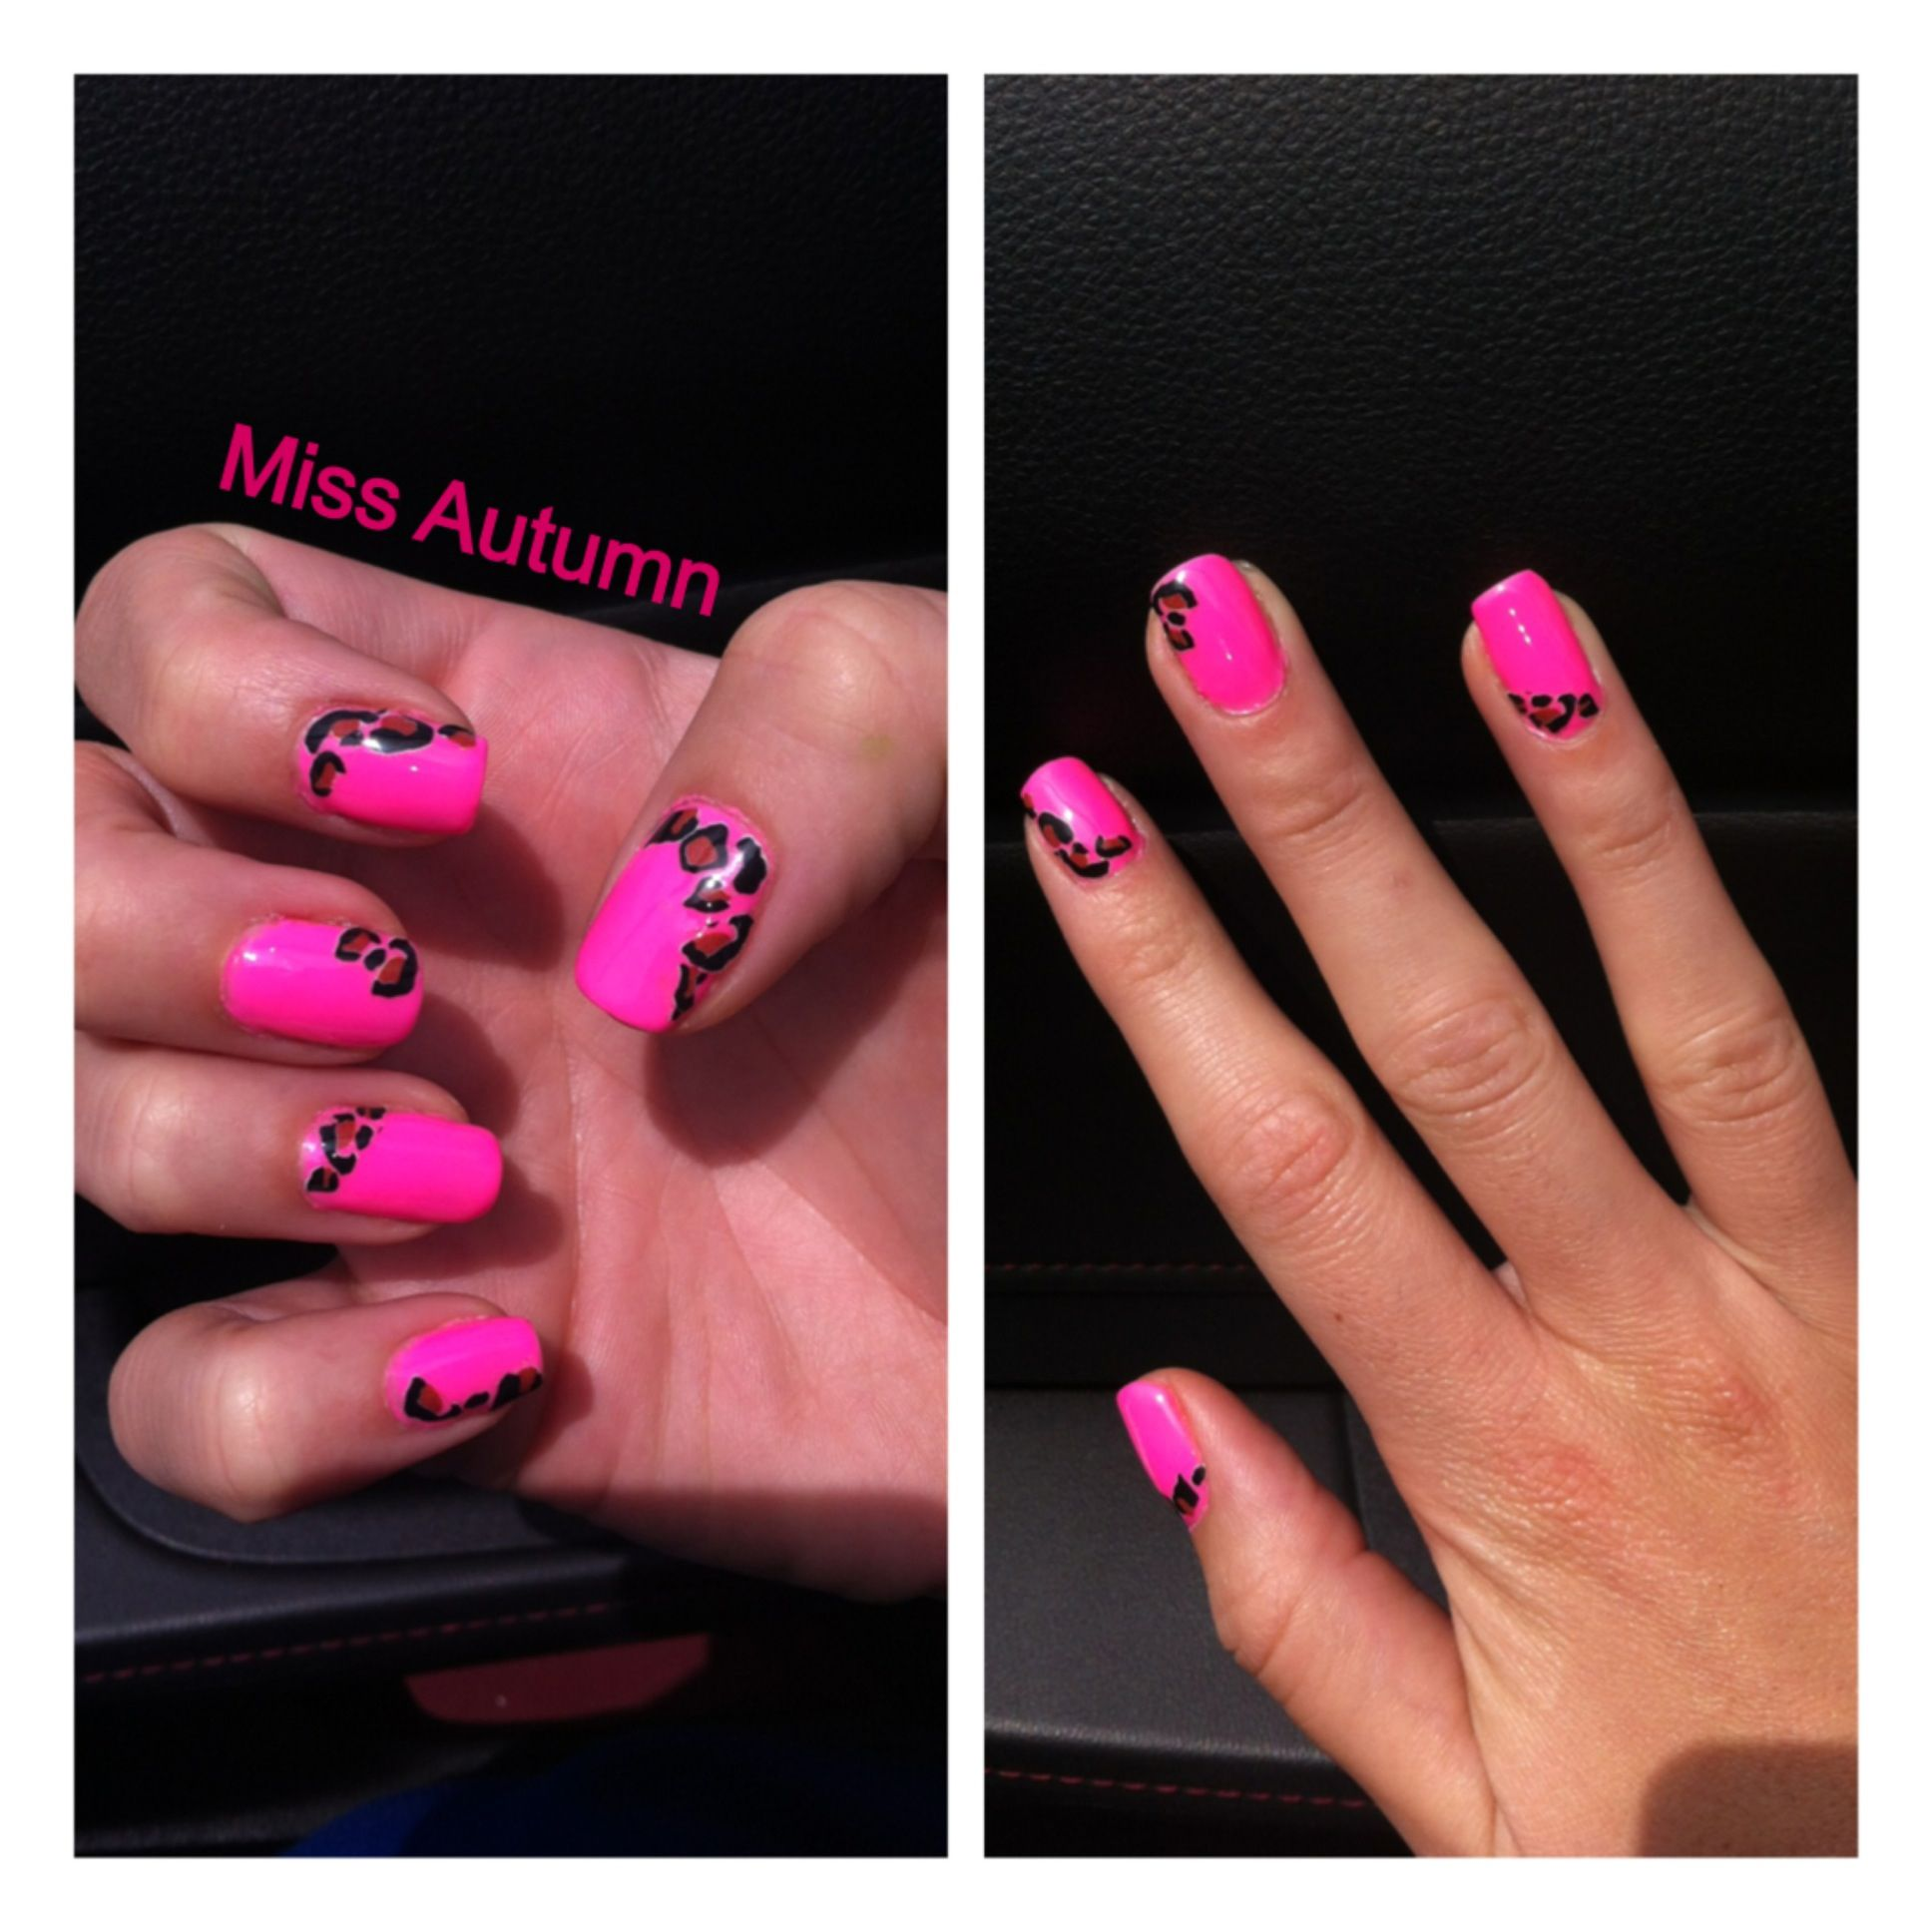 Perfect neon pink! I think the leopard stickers add a little glam. I ...